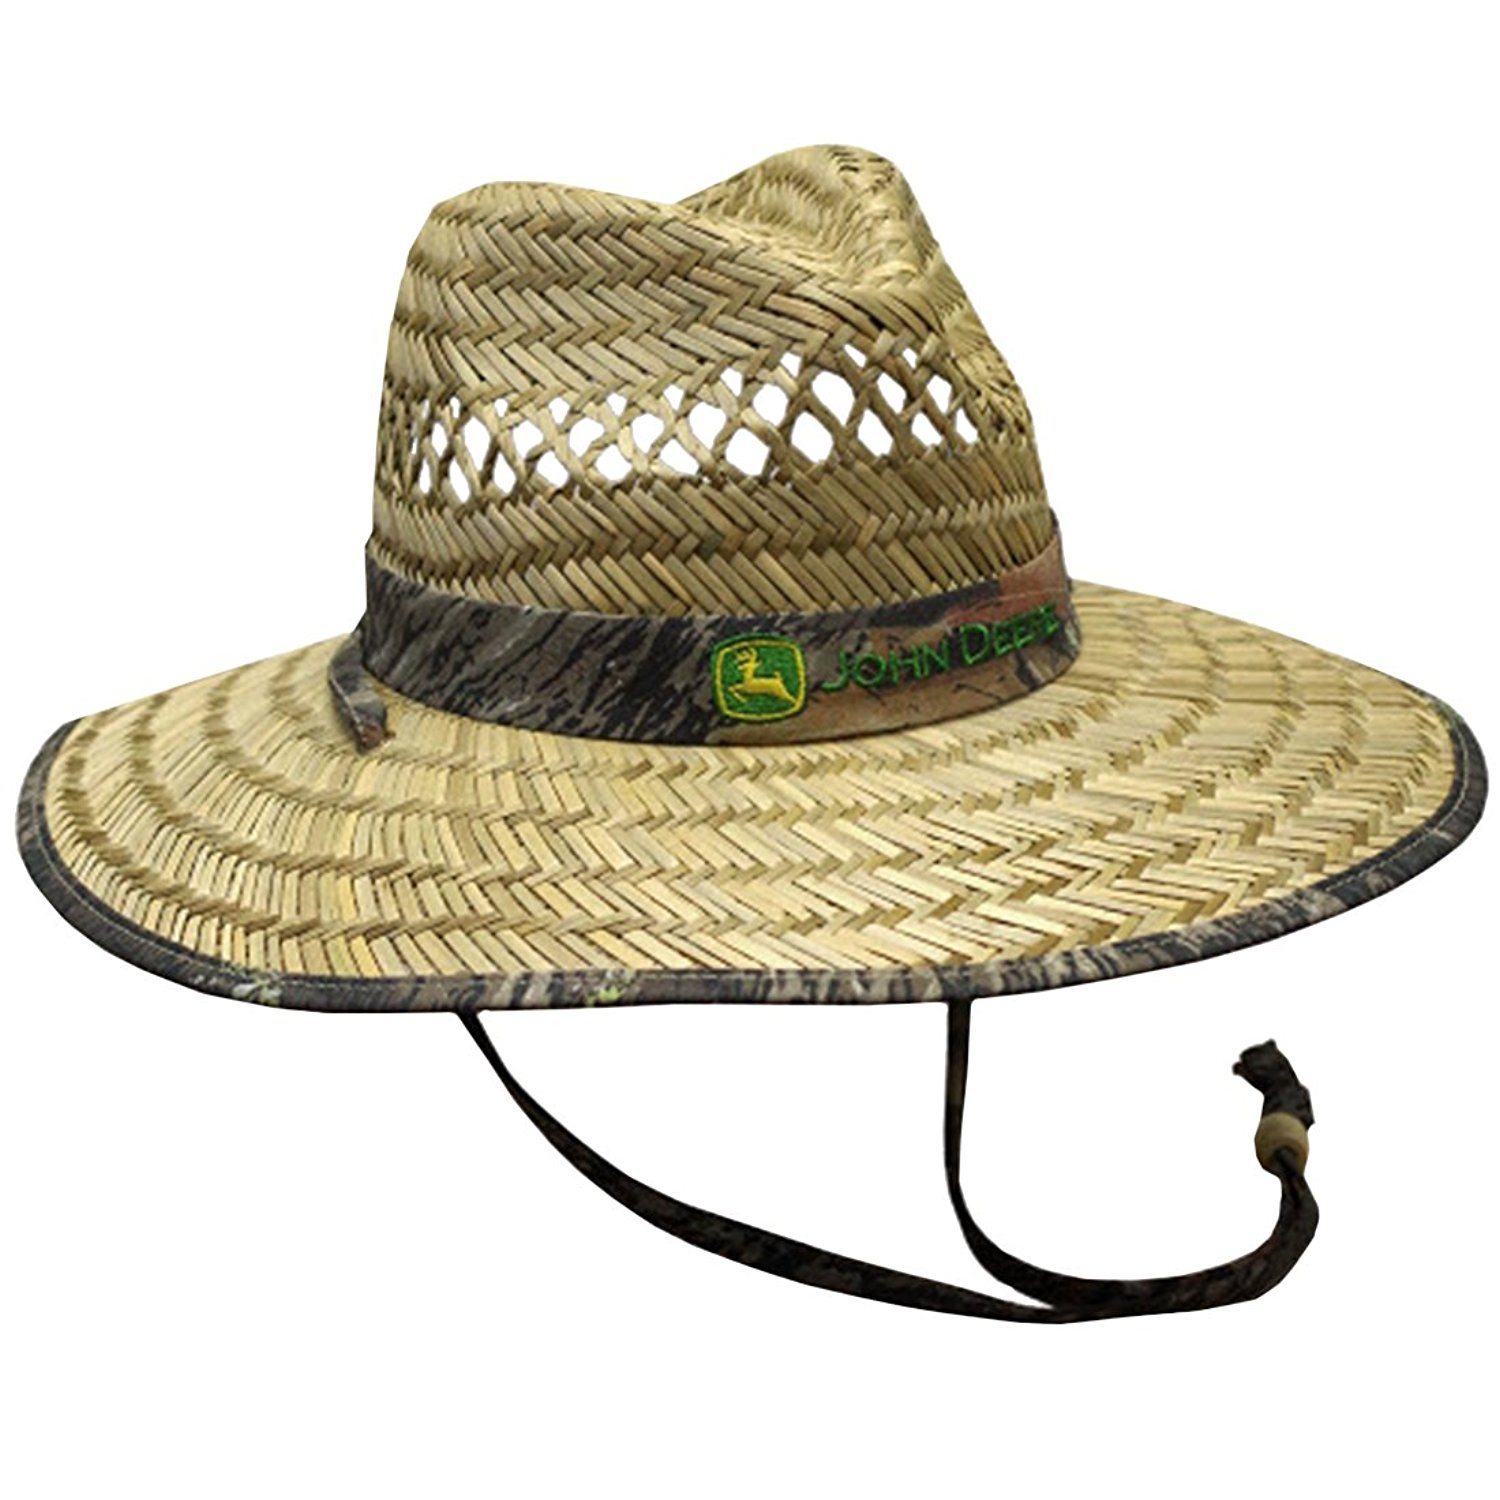 3dc1221e7e6 Get Quotations · John Deere Brand Camo Straw Hat With Neck Strap